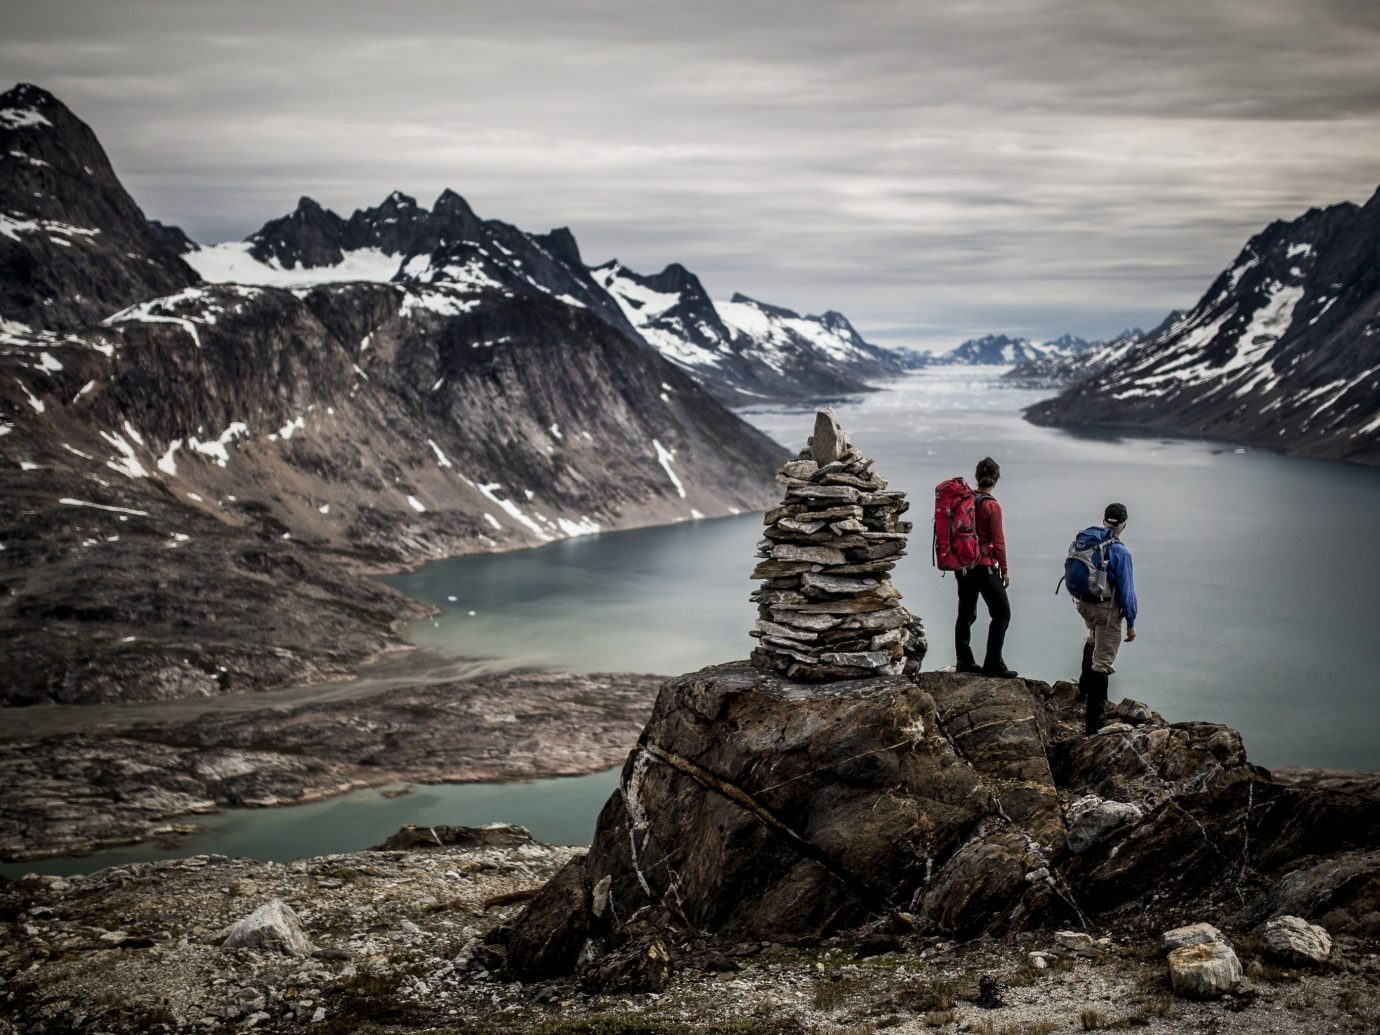 Hikers overlook the sound near Tiniteqilaaq in East Greenland